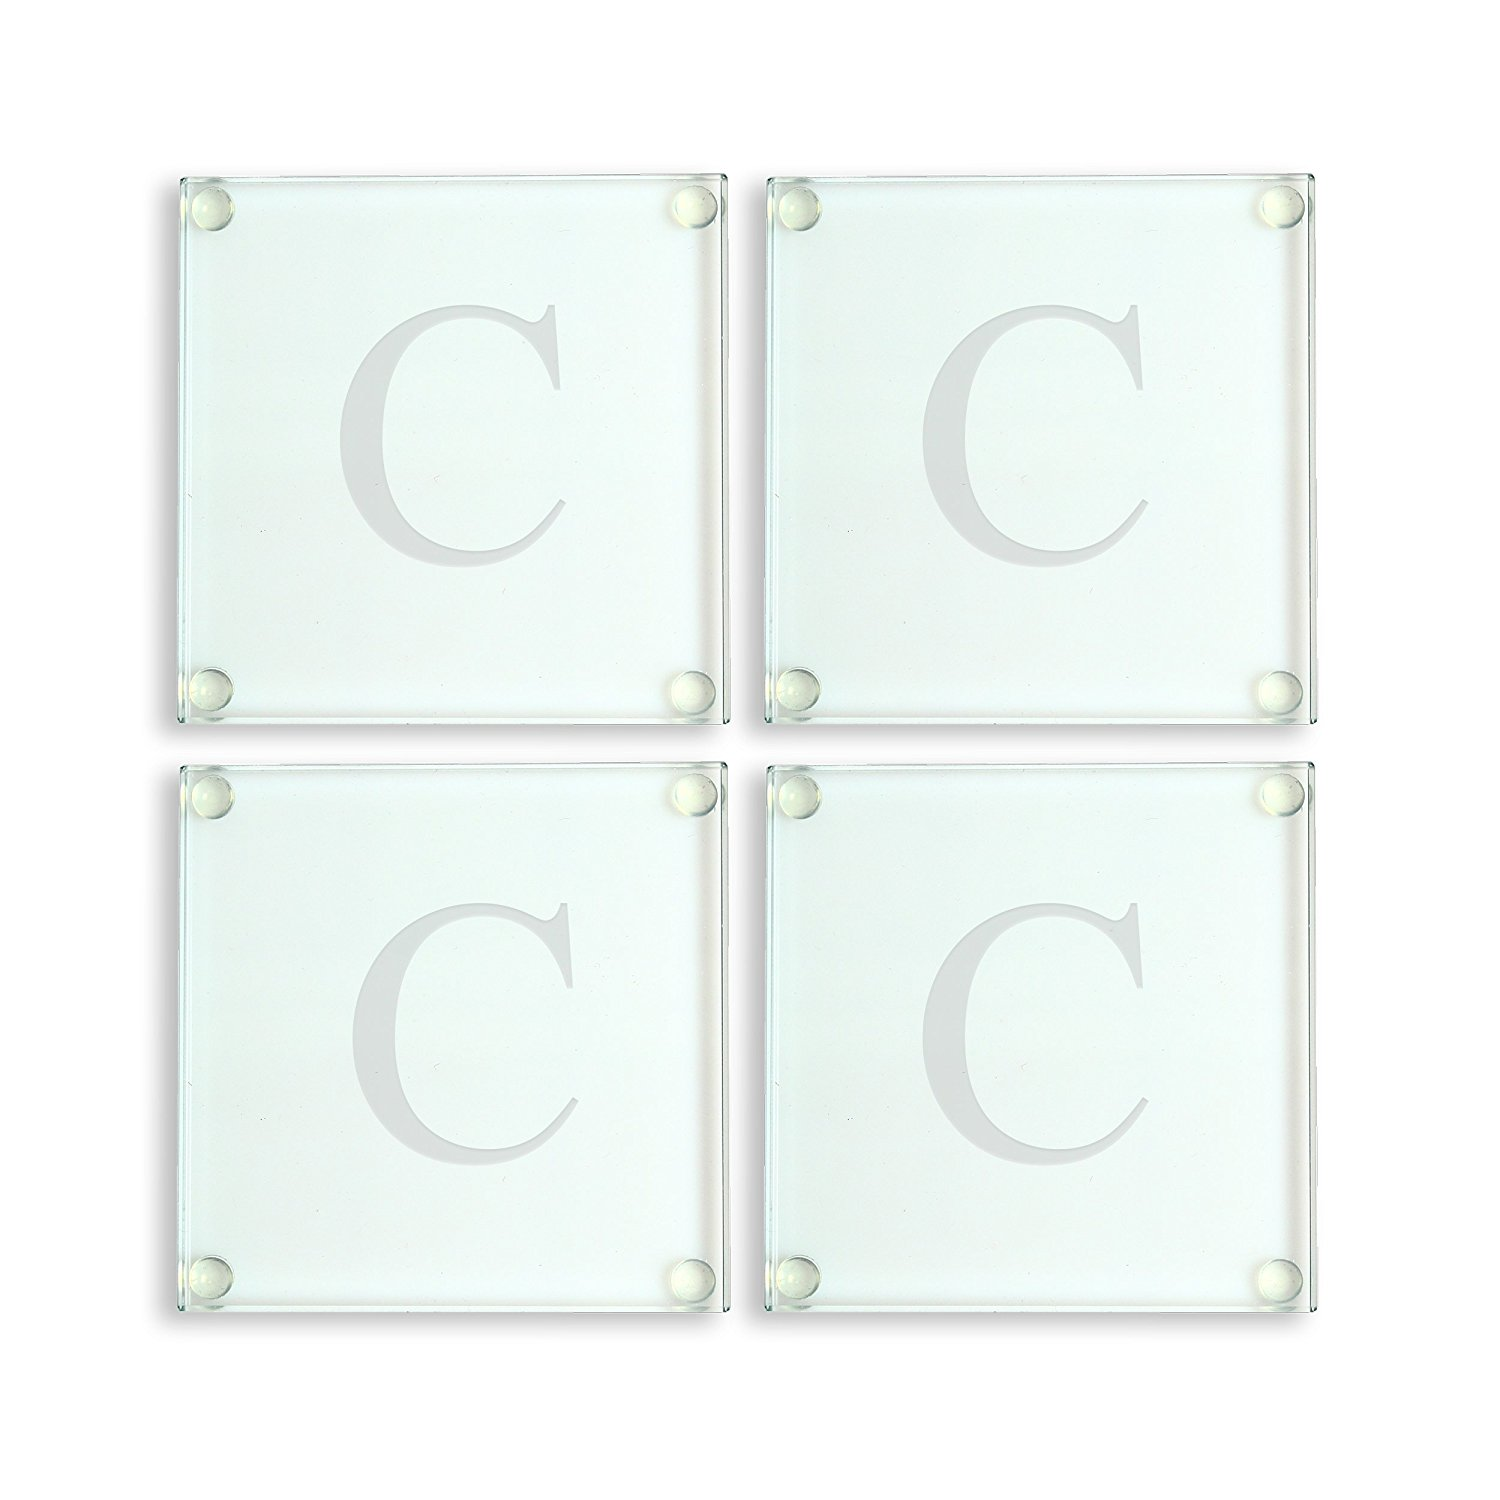 Cheap Personalized Glass Coasters Wedding, find Personalized Glass ...